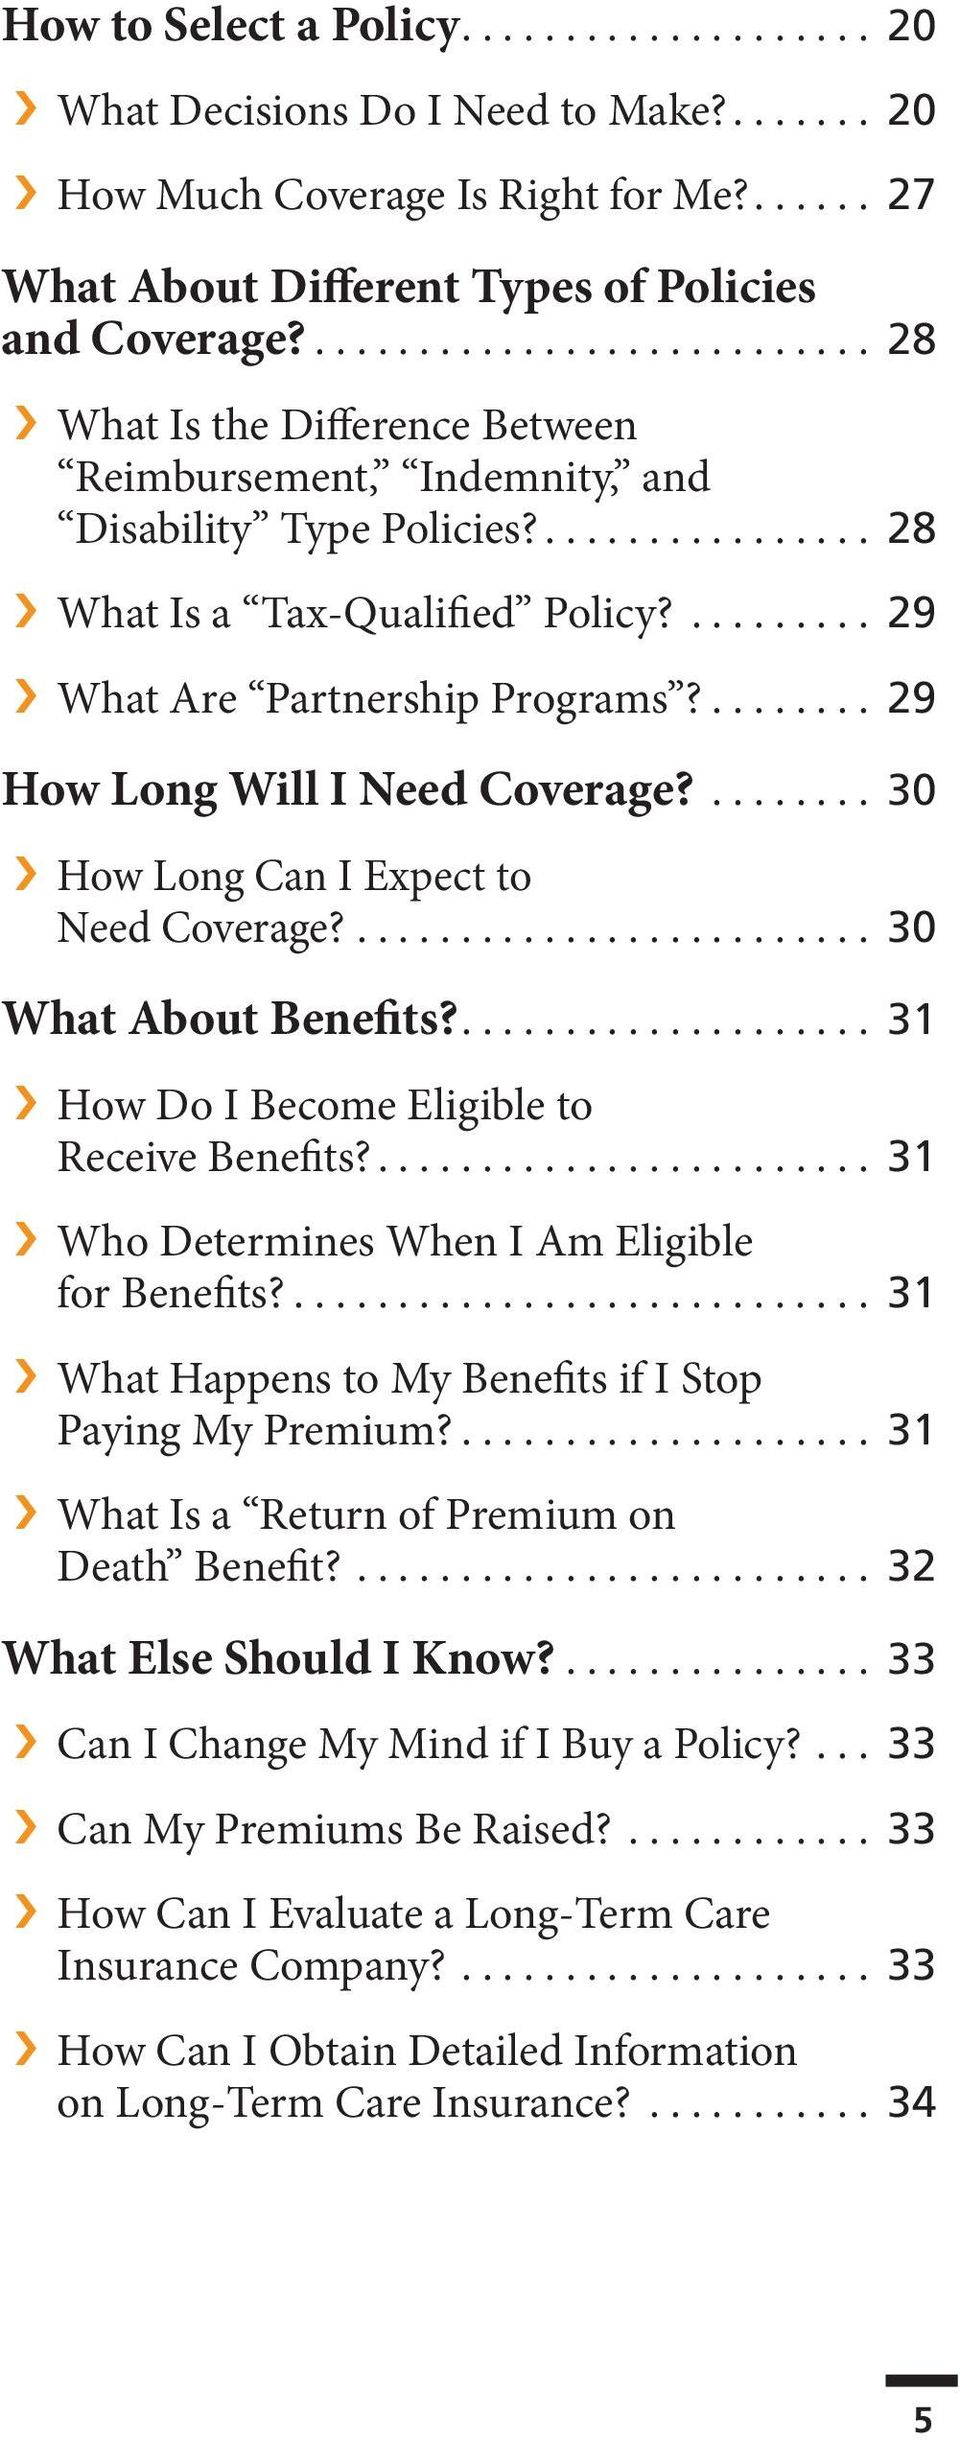 ......... 29 What Are Partnership Programs?........ 29 How Long Will I Need Coverage?........ 30 How Long Can I Expect to Need Coverage?......................... 30 What About Benefits?